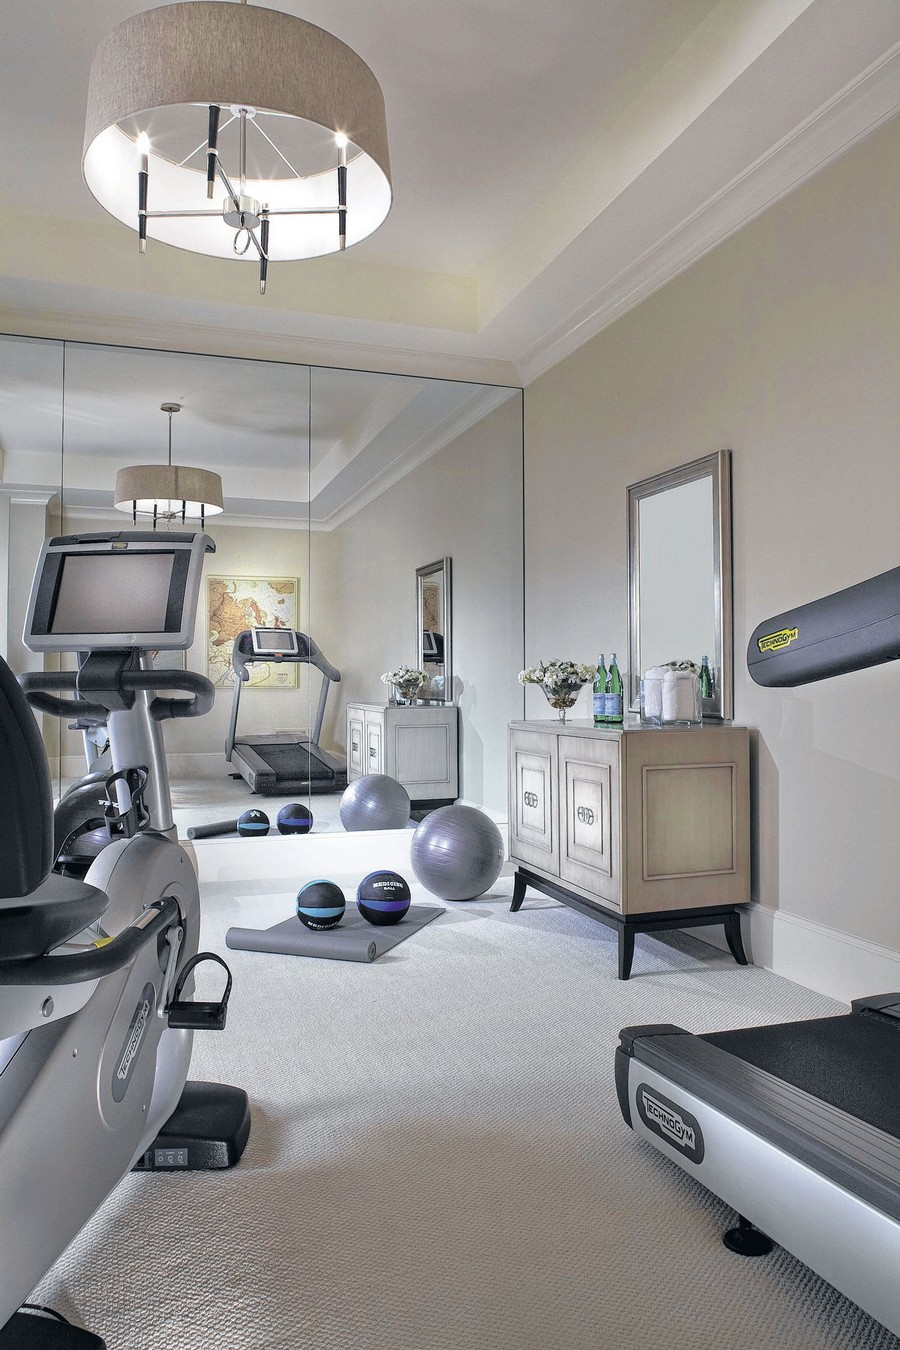 Home gym interior design tips home interior design for Full home interior design